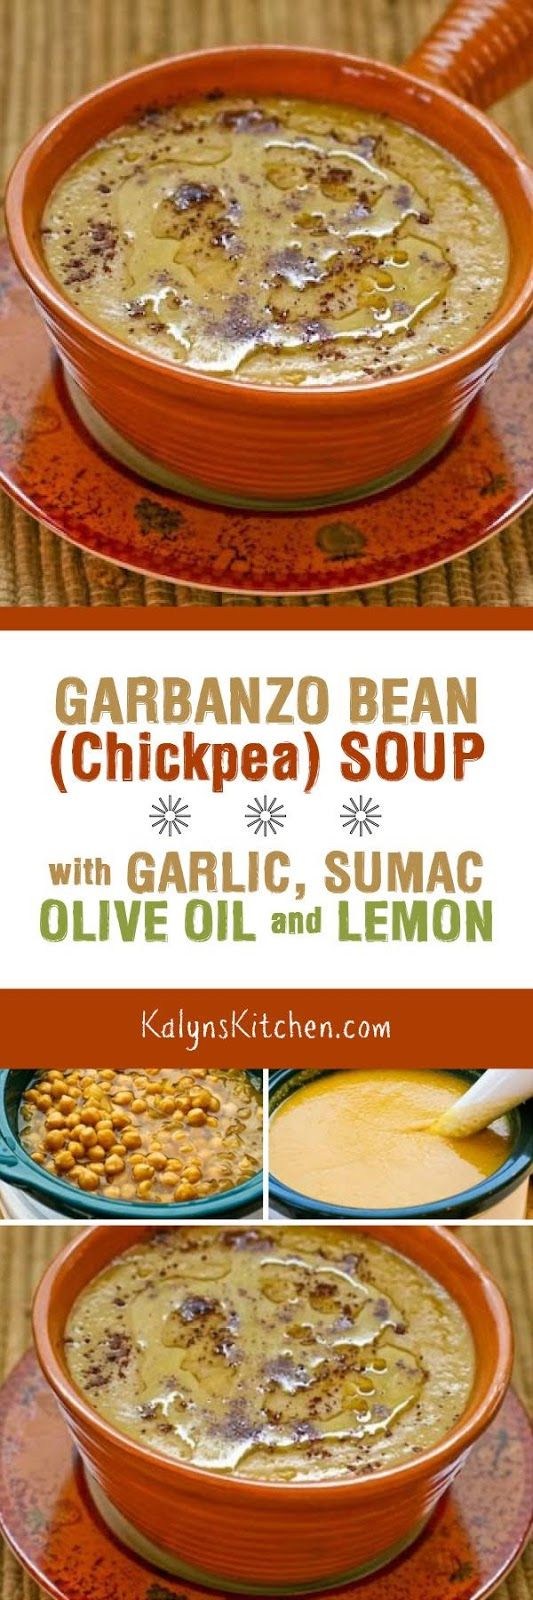 You can make this delicious Garbanzo Bean (Chickpea)  Soup with Garlic, Sumac, Olive Oil, and Lemon in the slow cooker or on the stove, and this amazing soup is vegan, low-glycemic, gluten-free, and South Beach Diet friendly. [from KalynsKitchen.com]